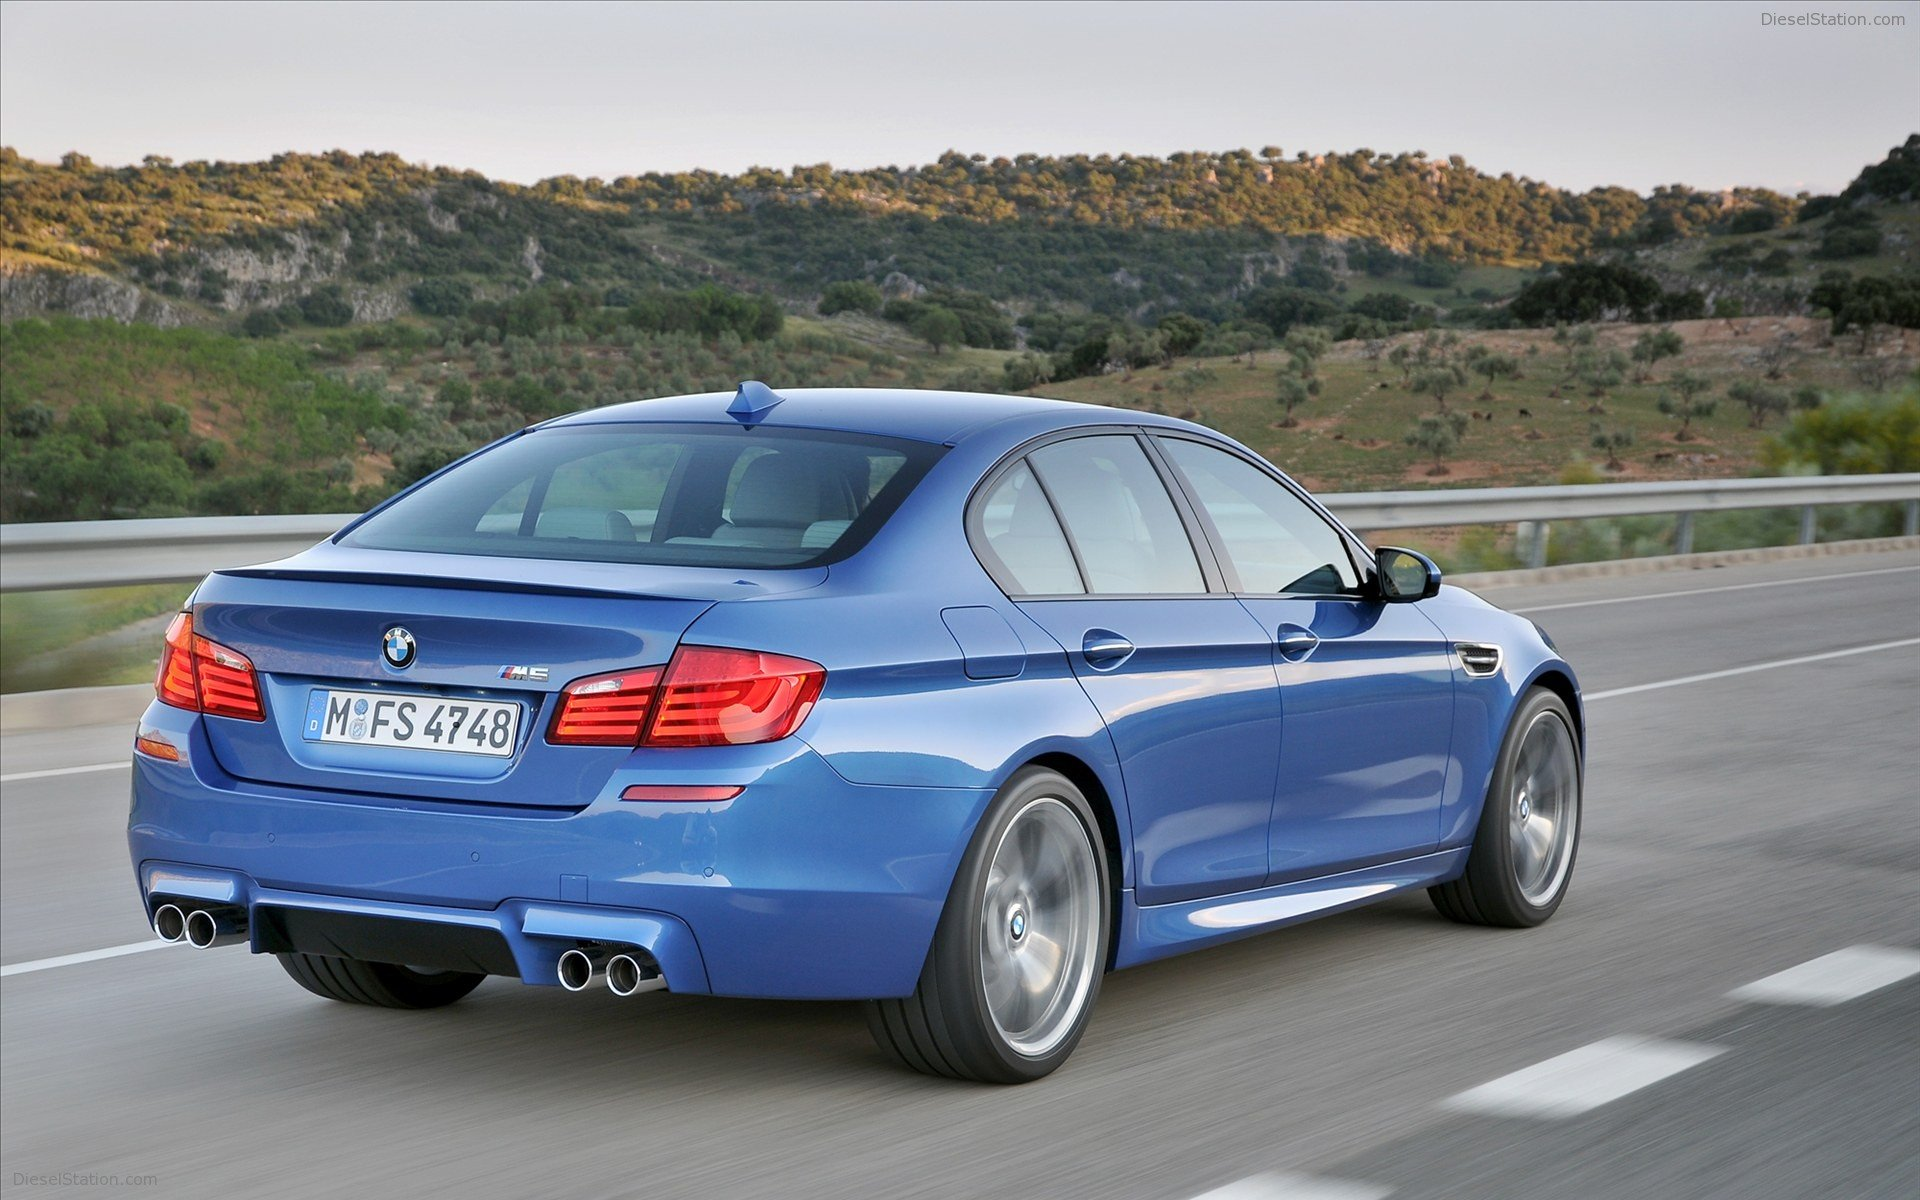 BMW M5 Saloon 2012 Widescreen Exotic Car Wallpapers 08 of 86 1920x1200